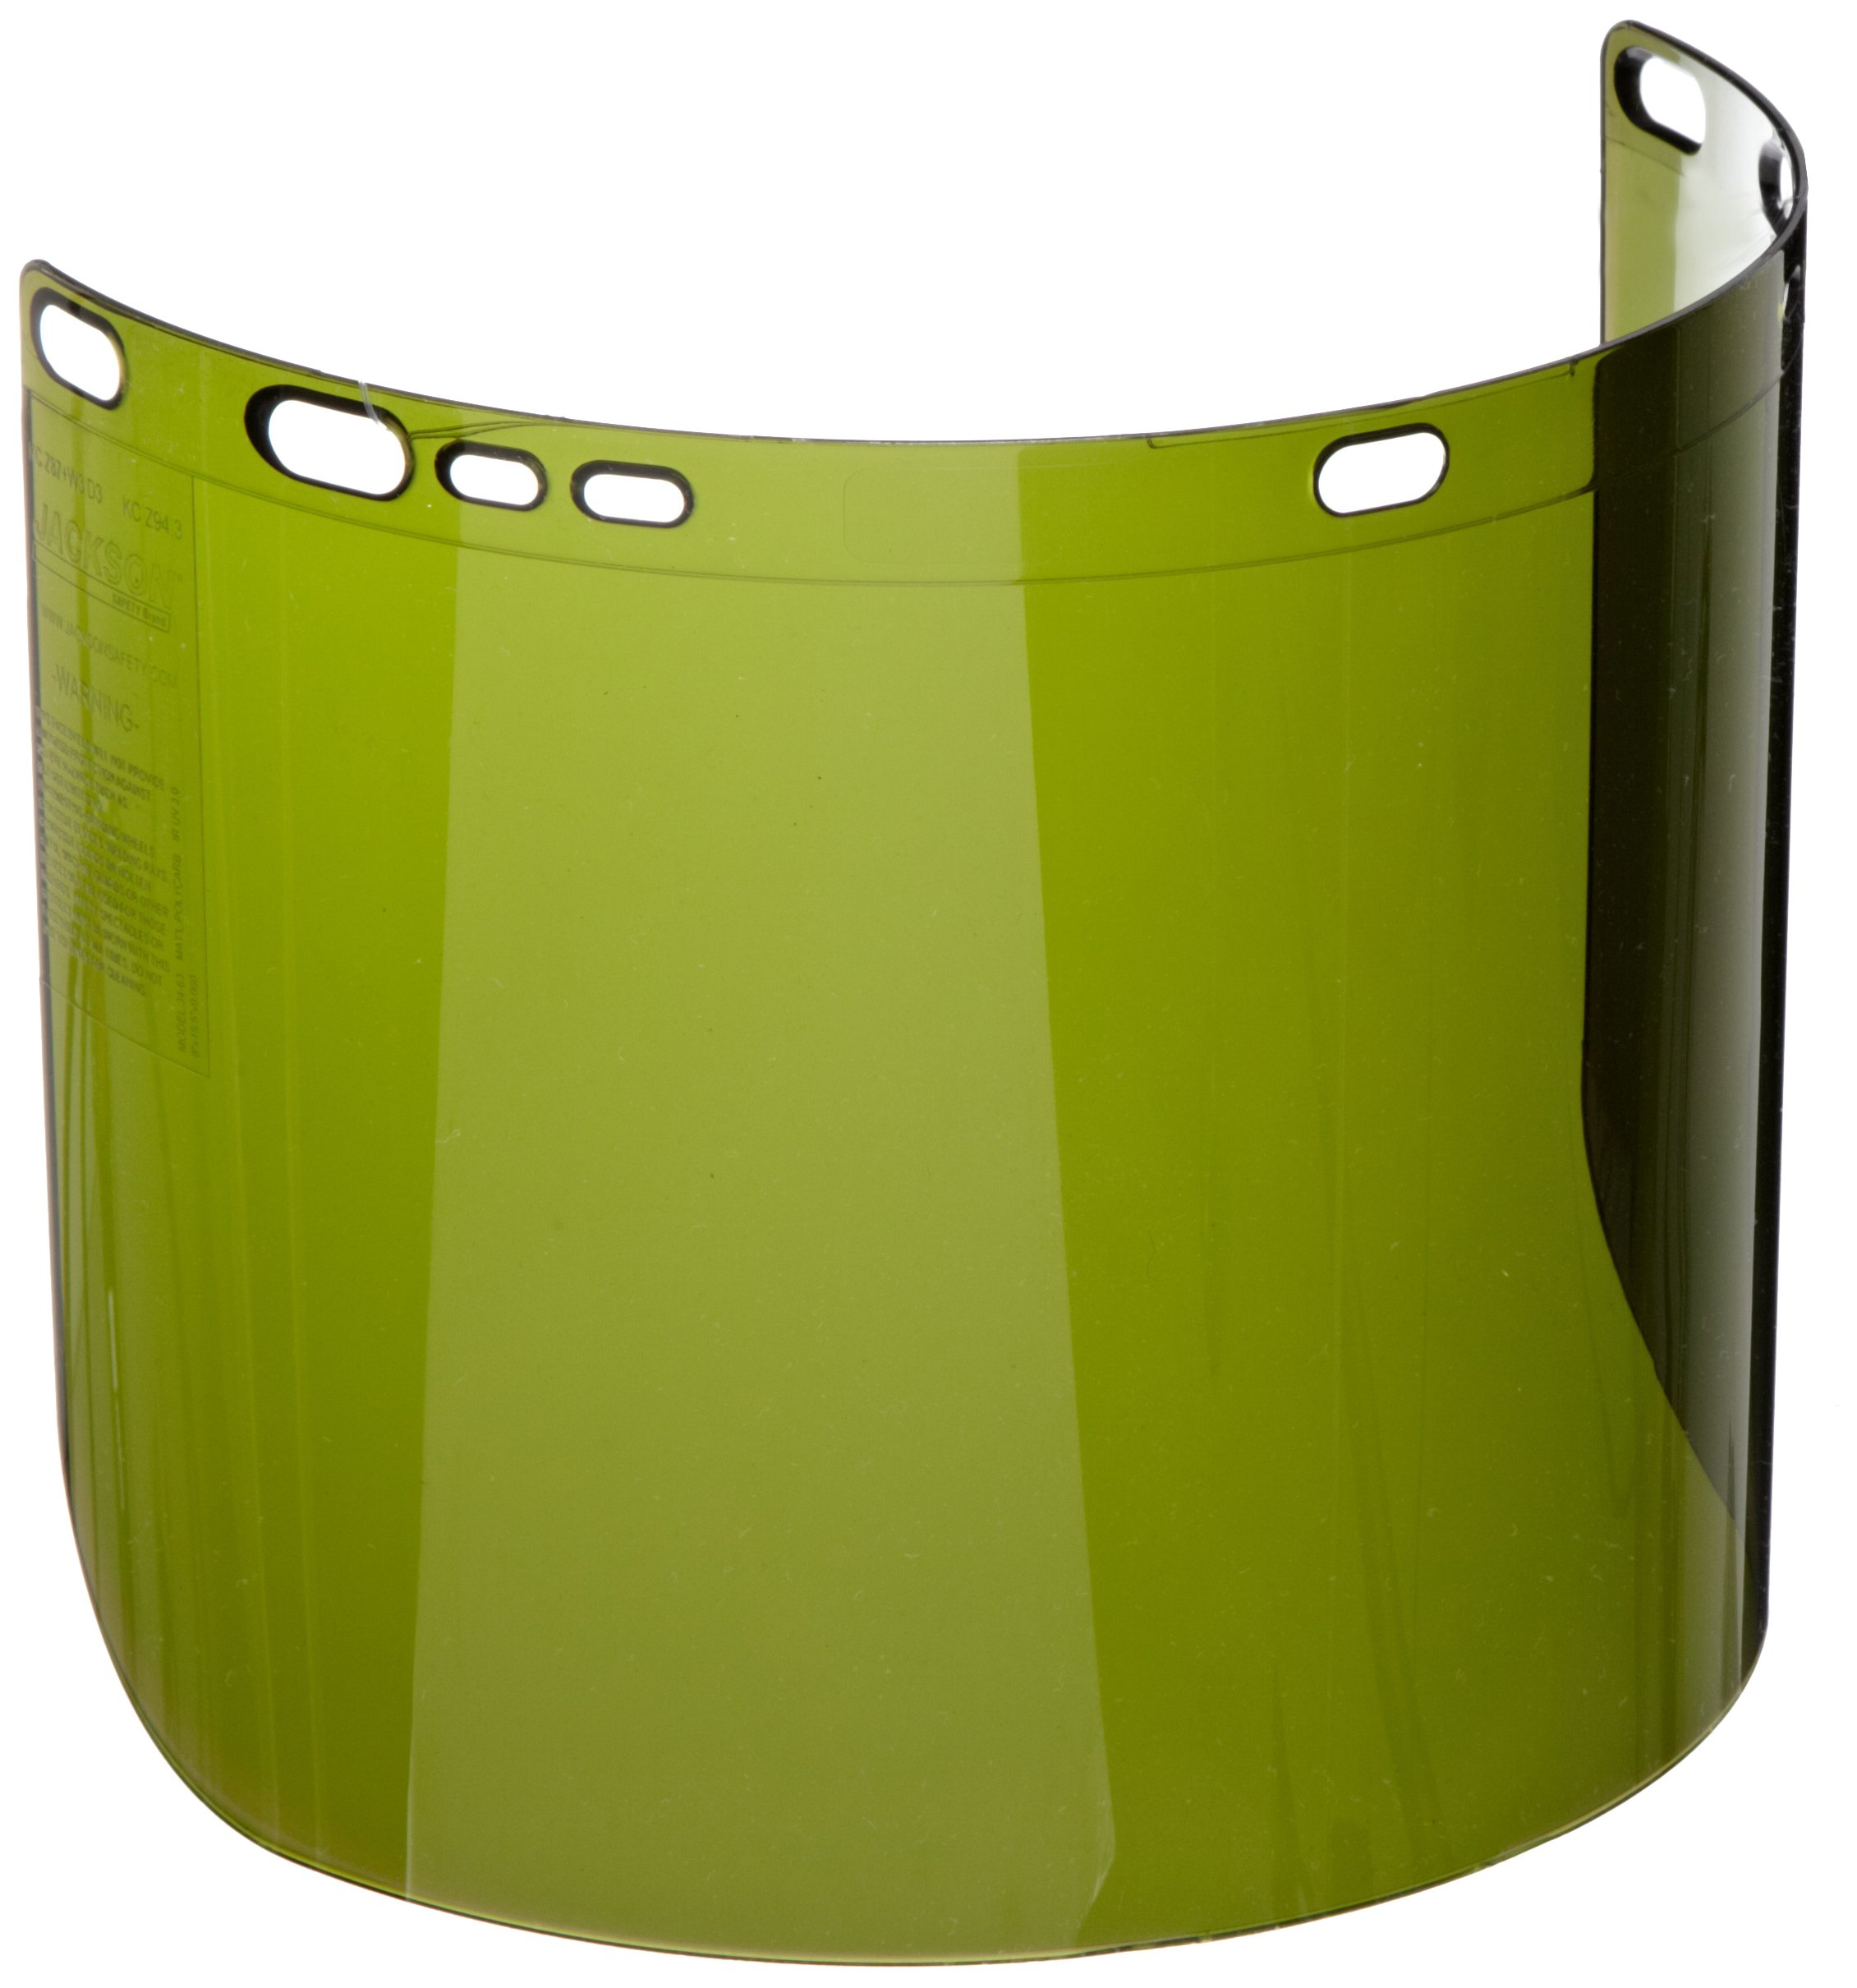 "Jackson Safety F50 Specialty High Impact Face Shield (26262), Polycarbonate, 8"" x 15.5"" x 0.06"", IRUV 3.0, Face Protection, Unbound, 12 Shields / Case by Jackson Safety (Image #1)"